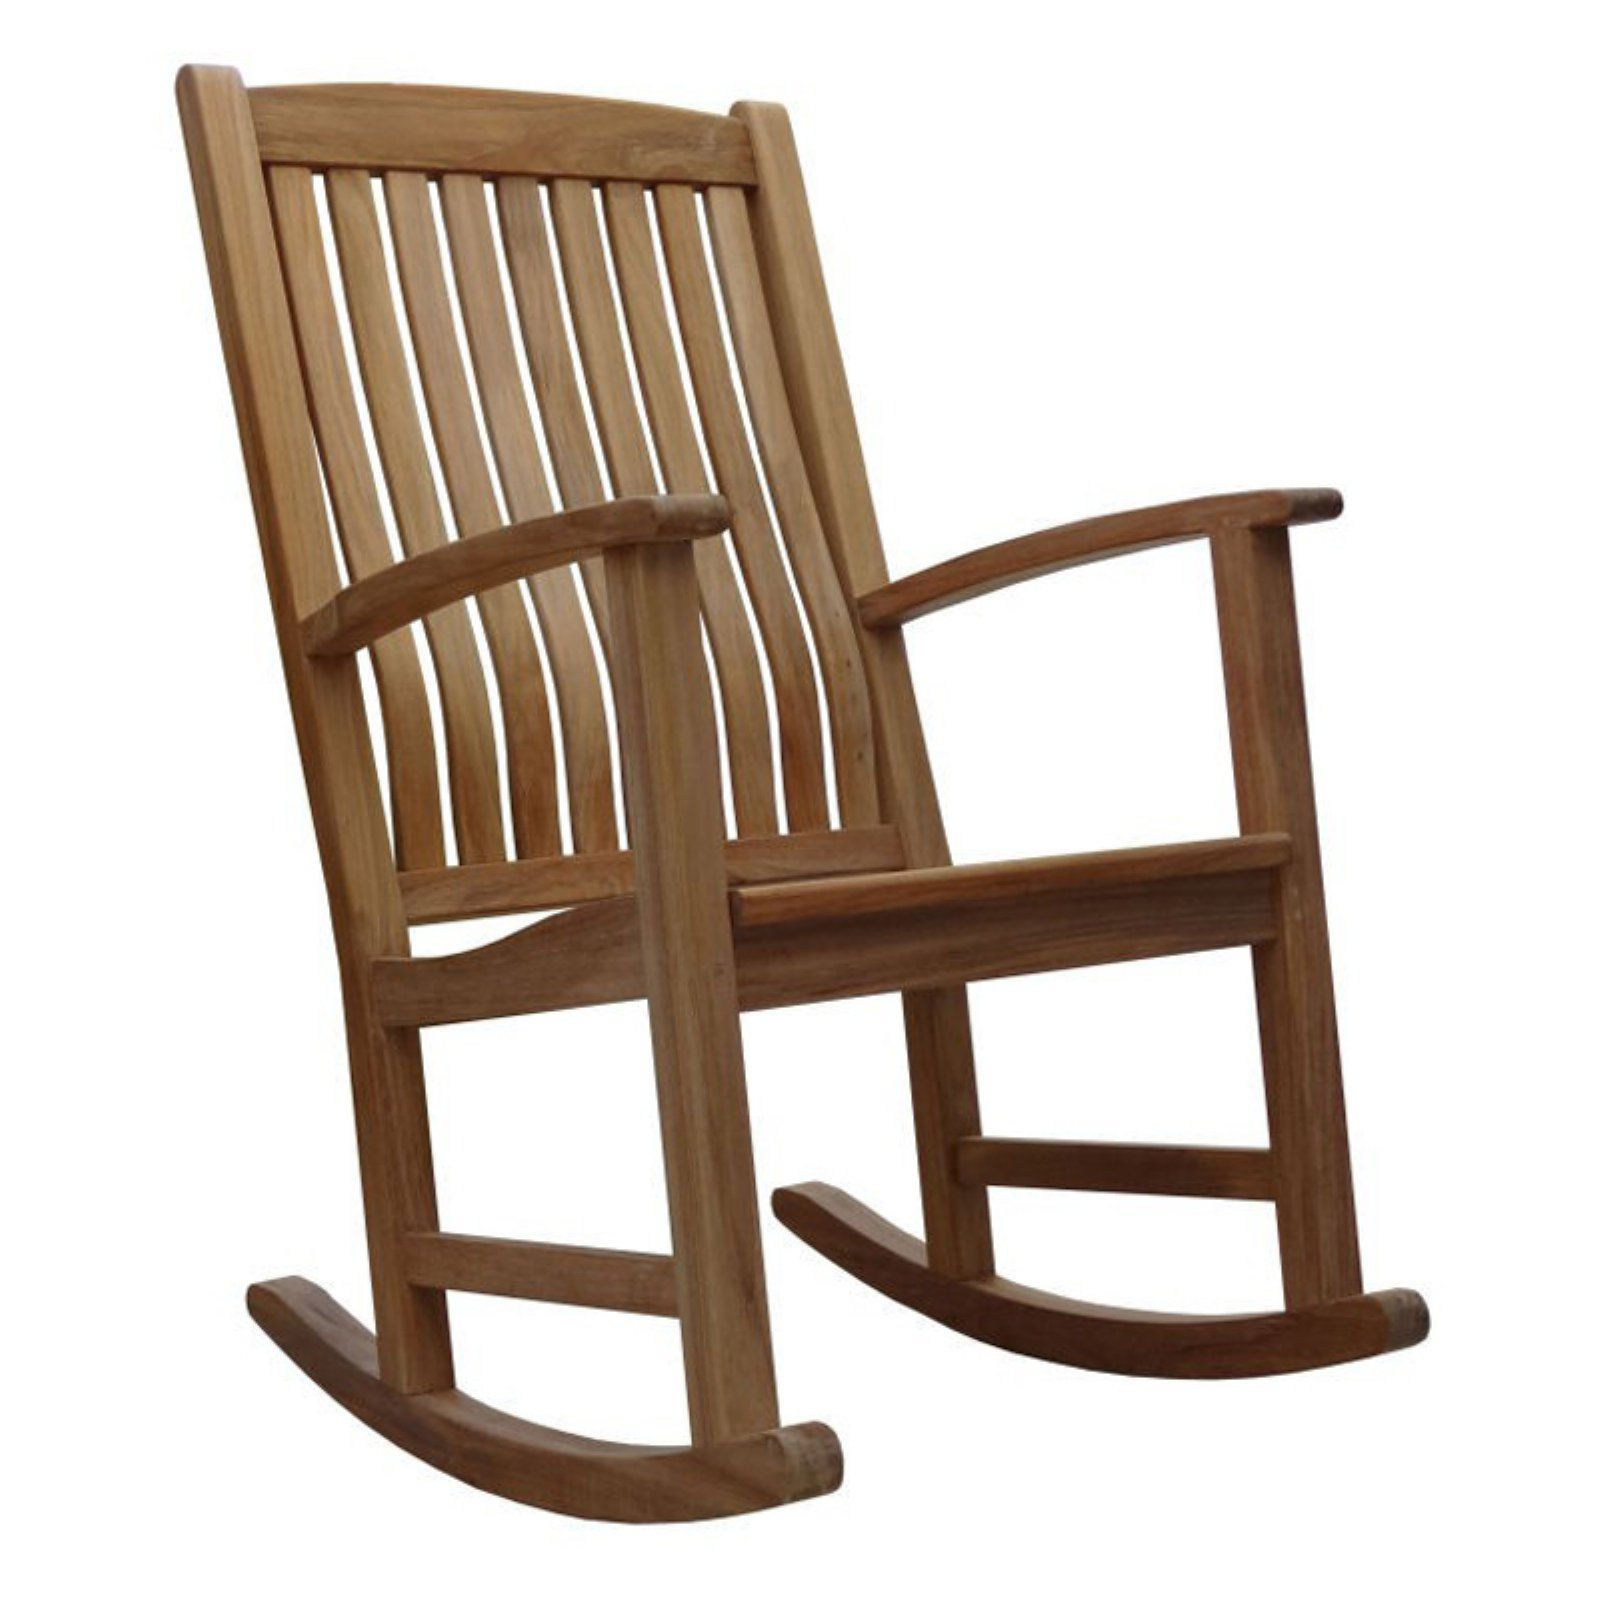 Super Douglas Nance Classic Teak Outdoor Rocking Chair Products Gmtry Best Dining Table And Chair Ideas Images Gmtryco